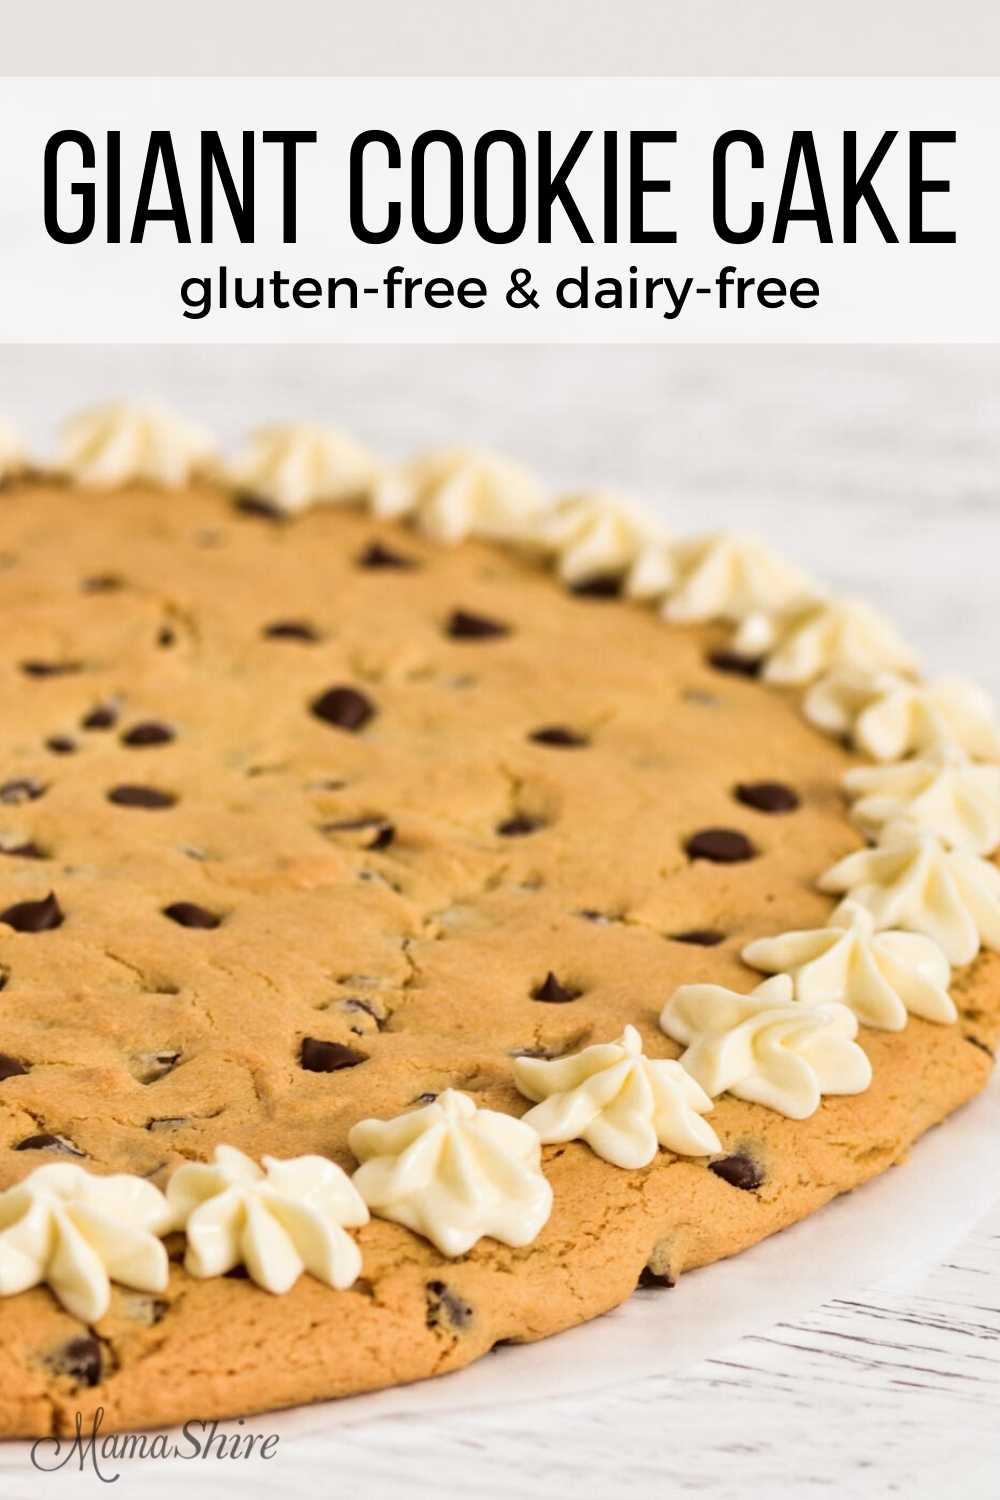 Gluten-free pizza cookie with chocolate chips and icing.